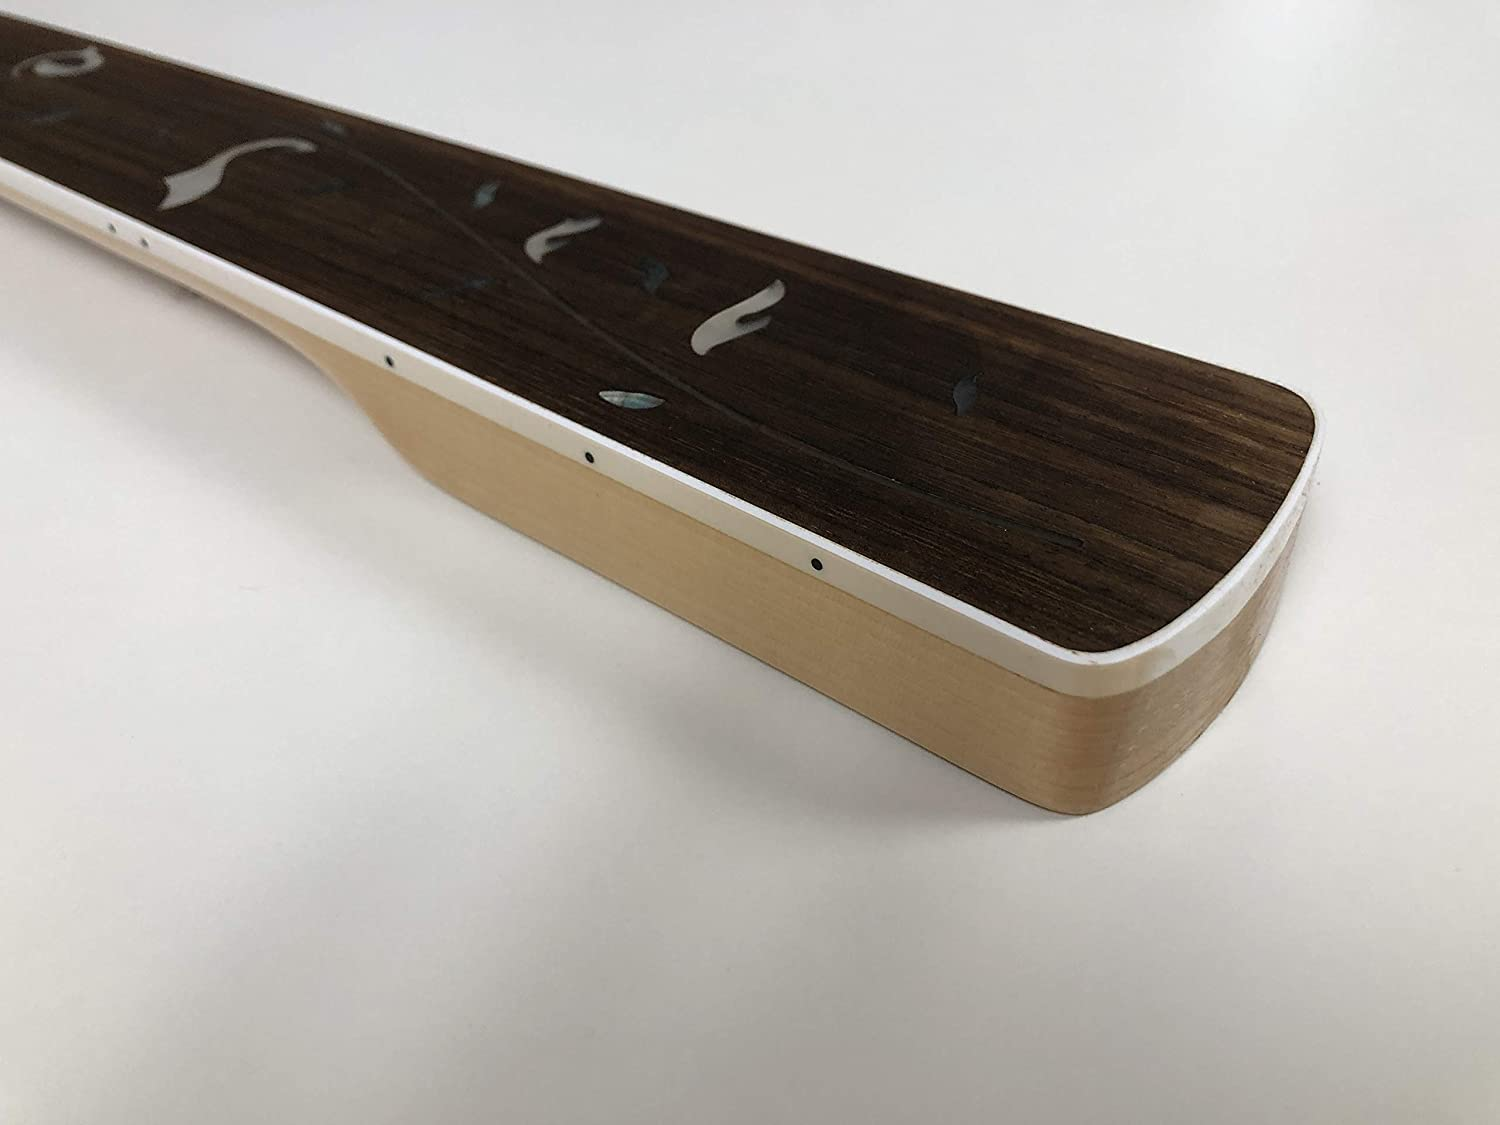 Fretless 4 String Electric Bass guitar neck 20 Fret 34inch Maple Rosewood fingerboard Vine Inlay Gloss